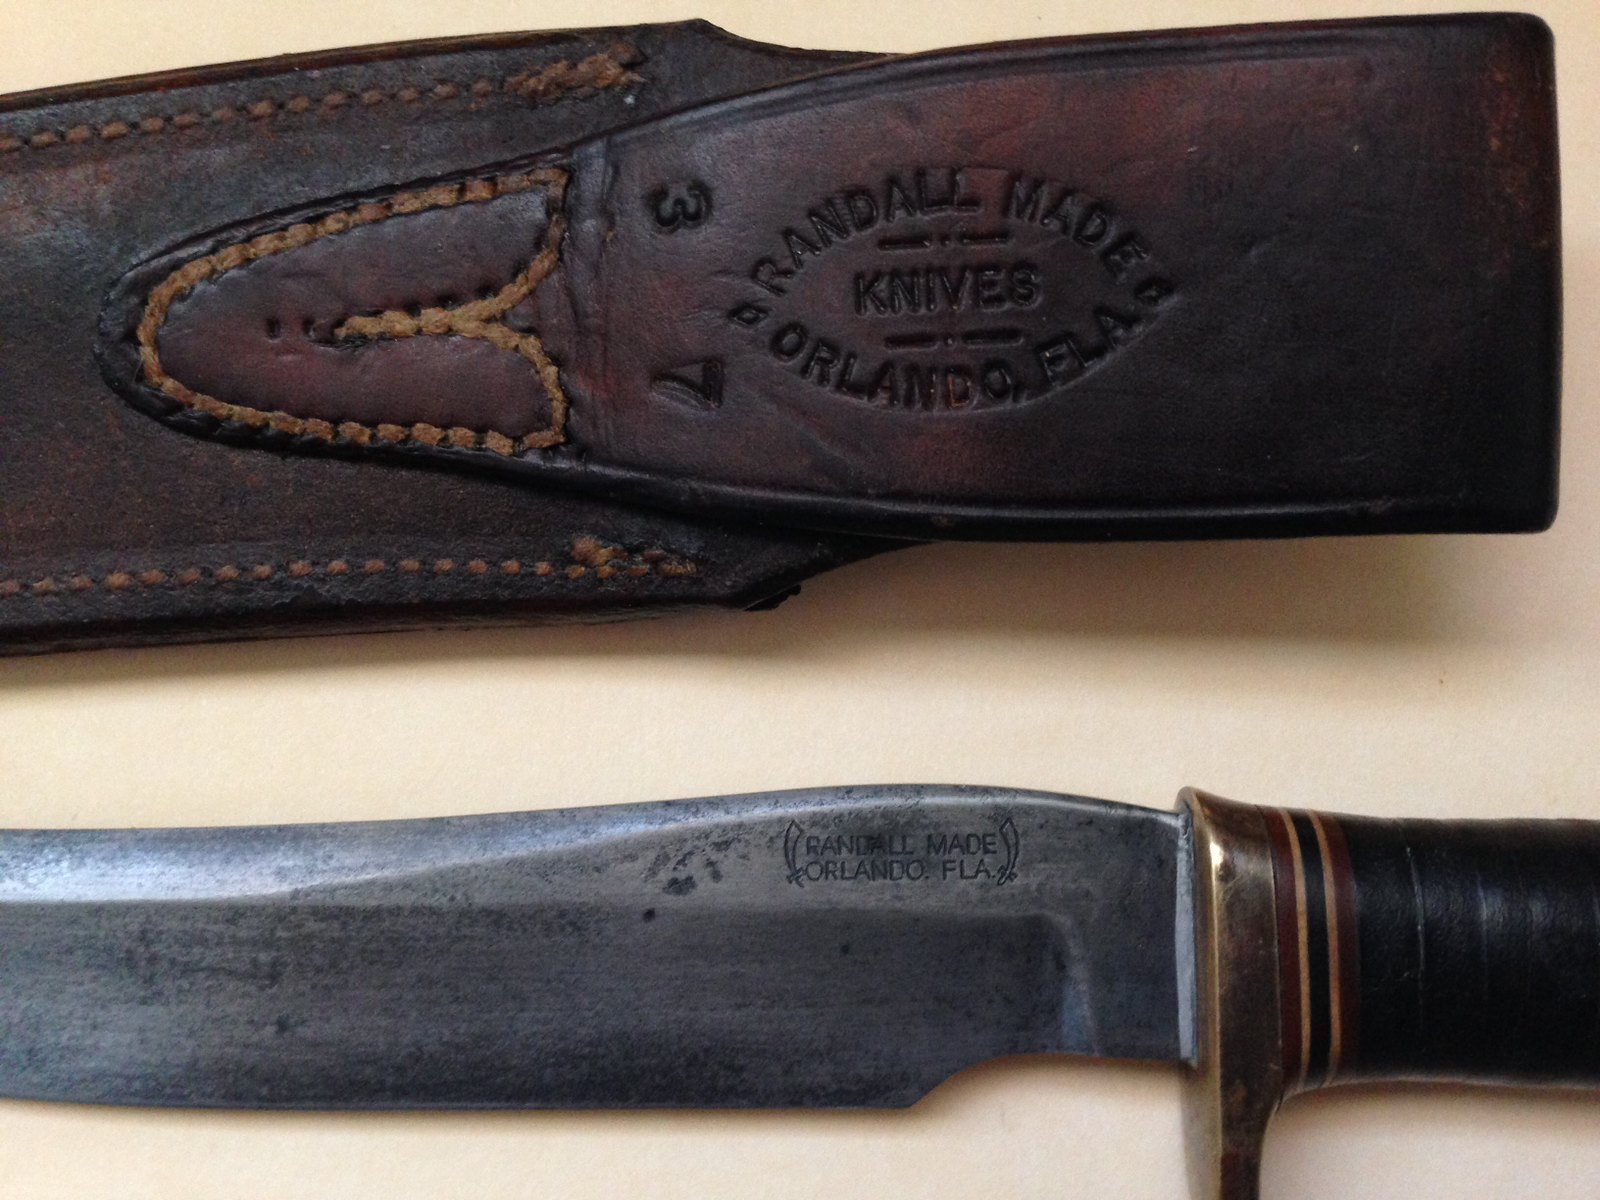 Three other Randall knives are shown in Fig.